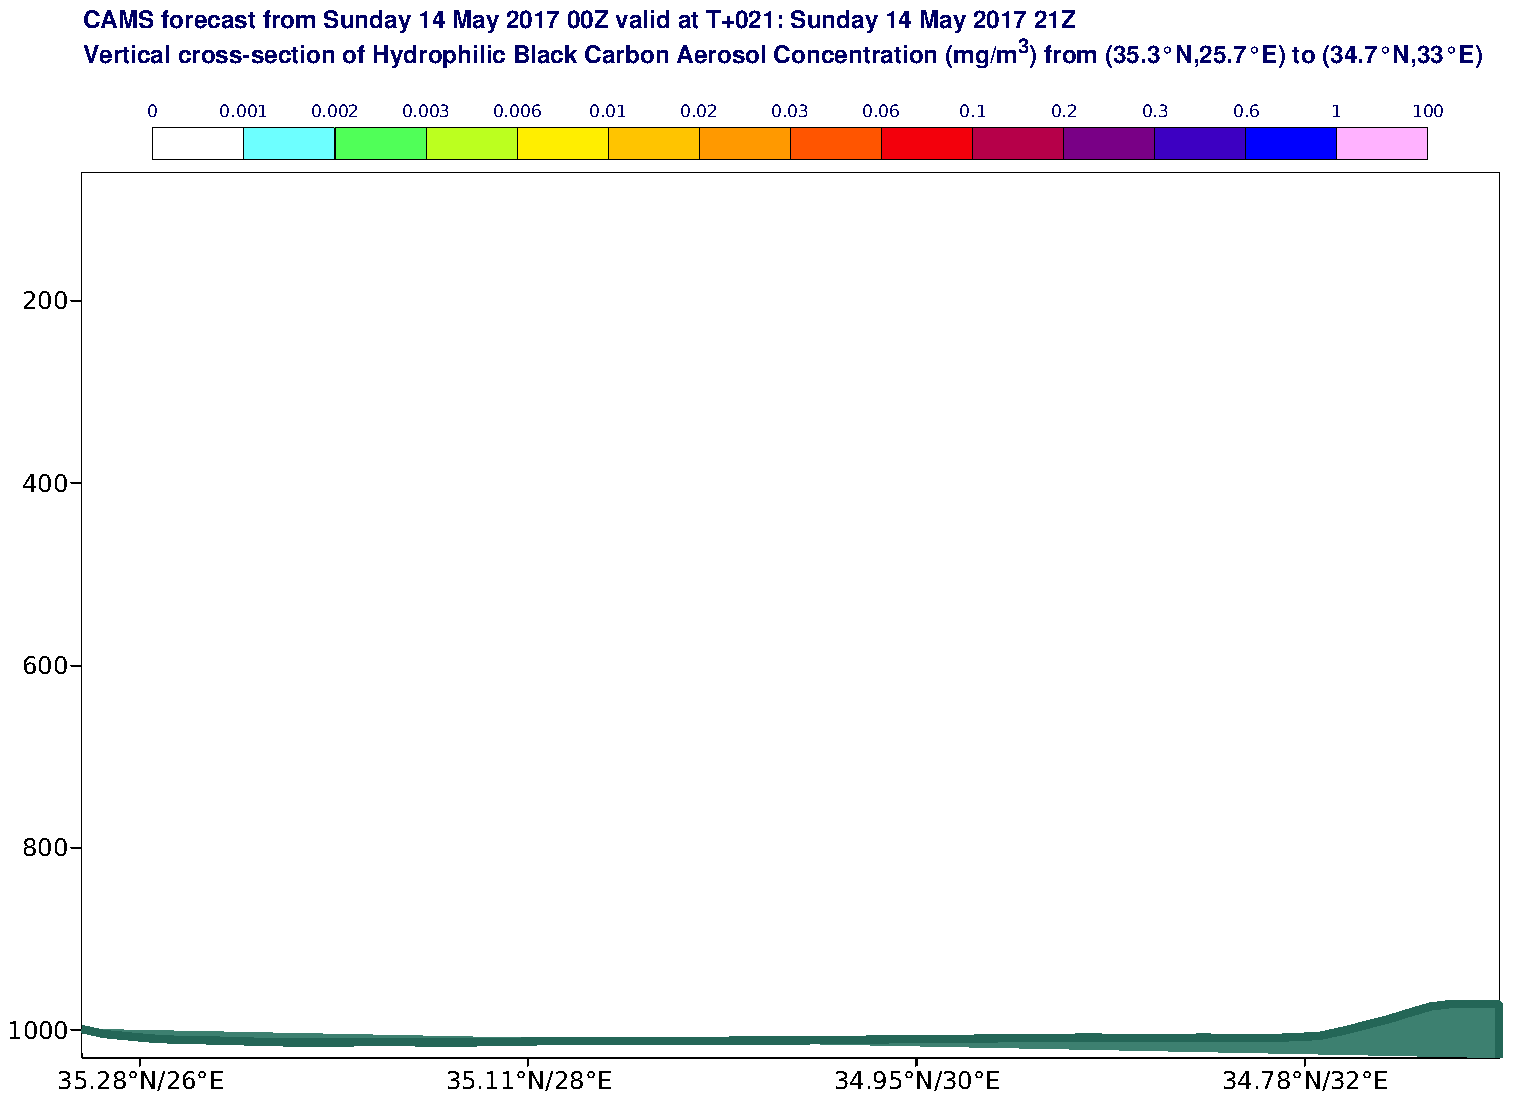 Vertical cross-section of Hydrophilic Black Carbon Aerosol Concentration (mg/m3) valid at T21 - 2017-05-14 21:00